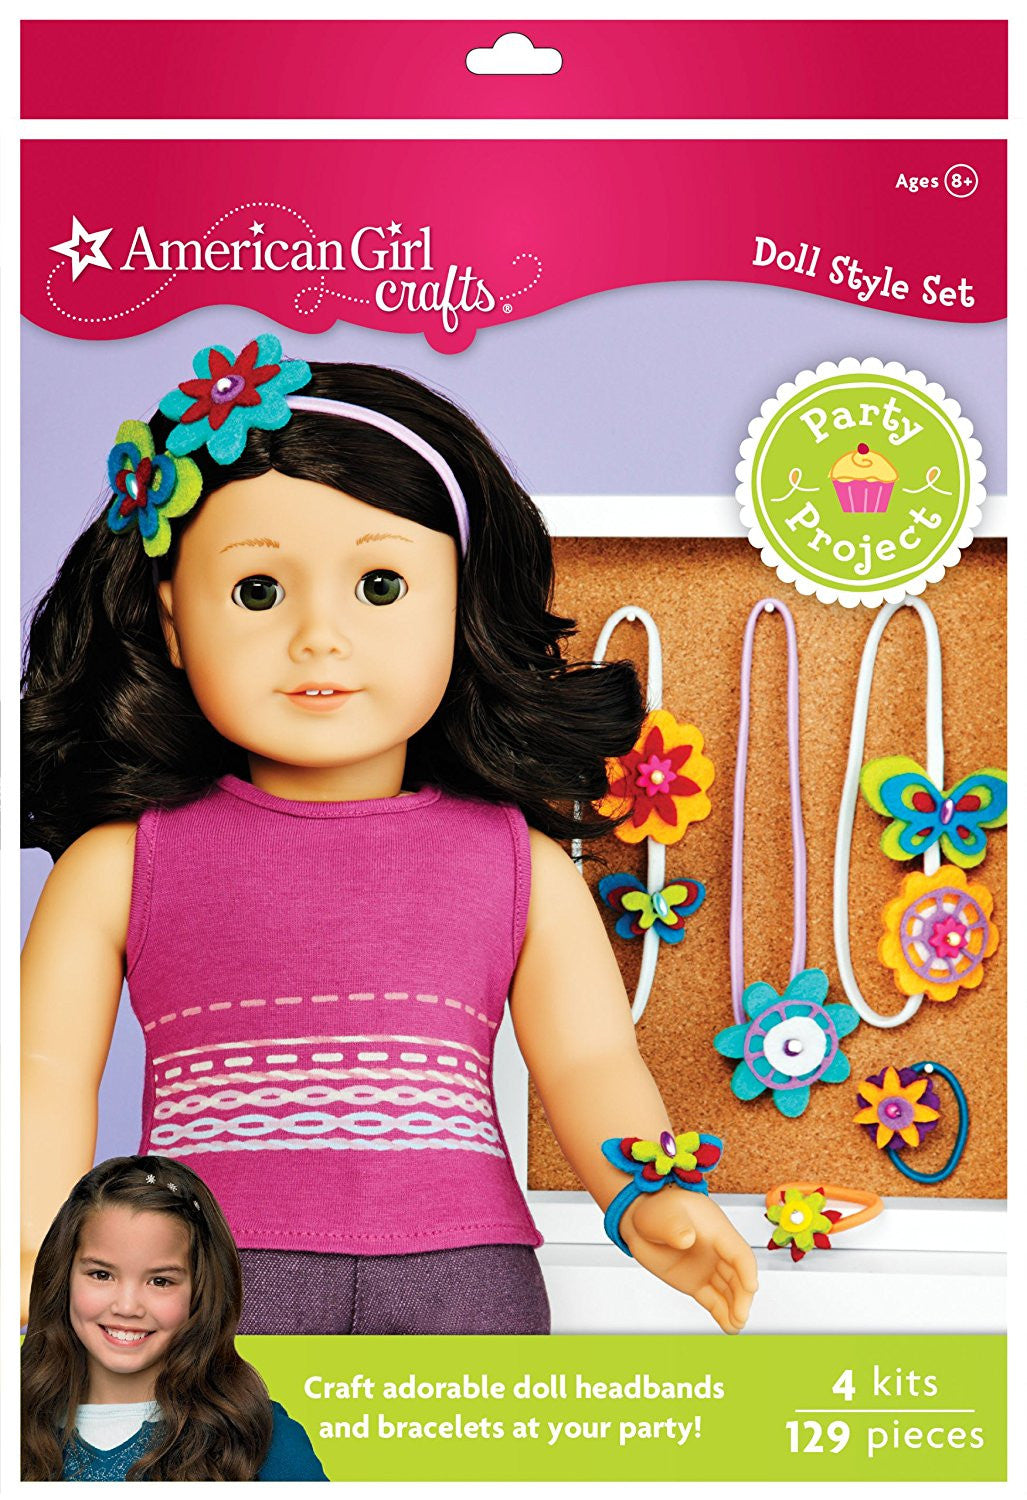 American Girl Crafts Doll Accessory Party Activity Kit